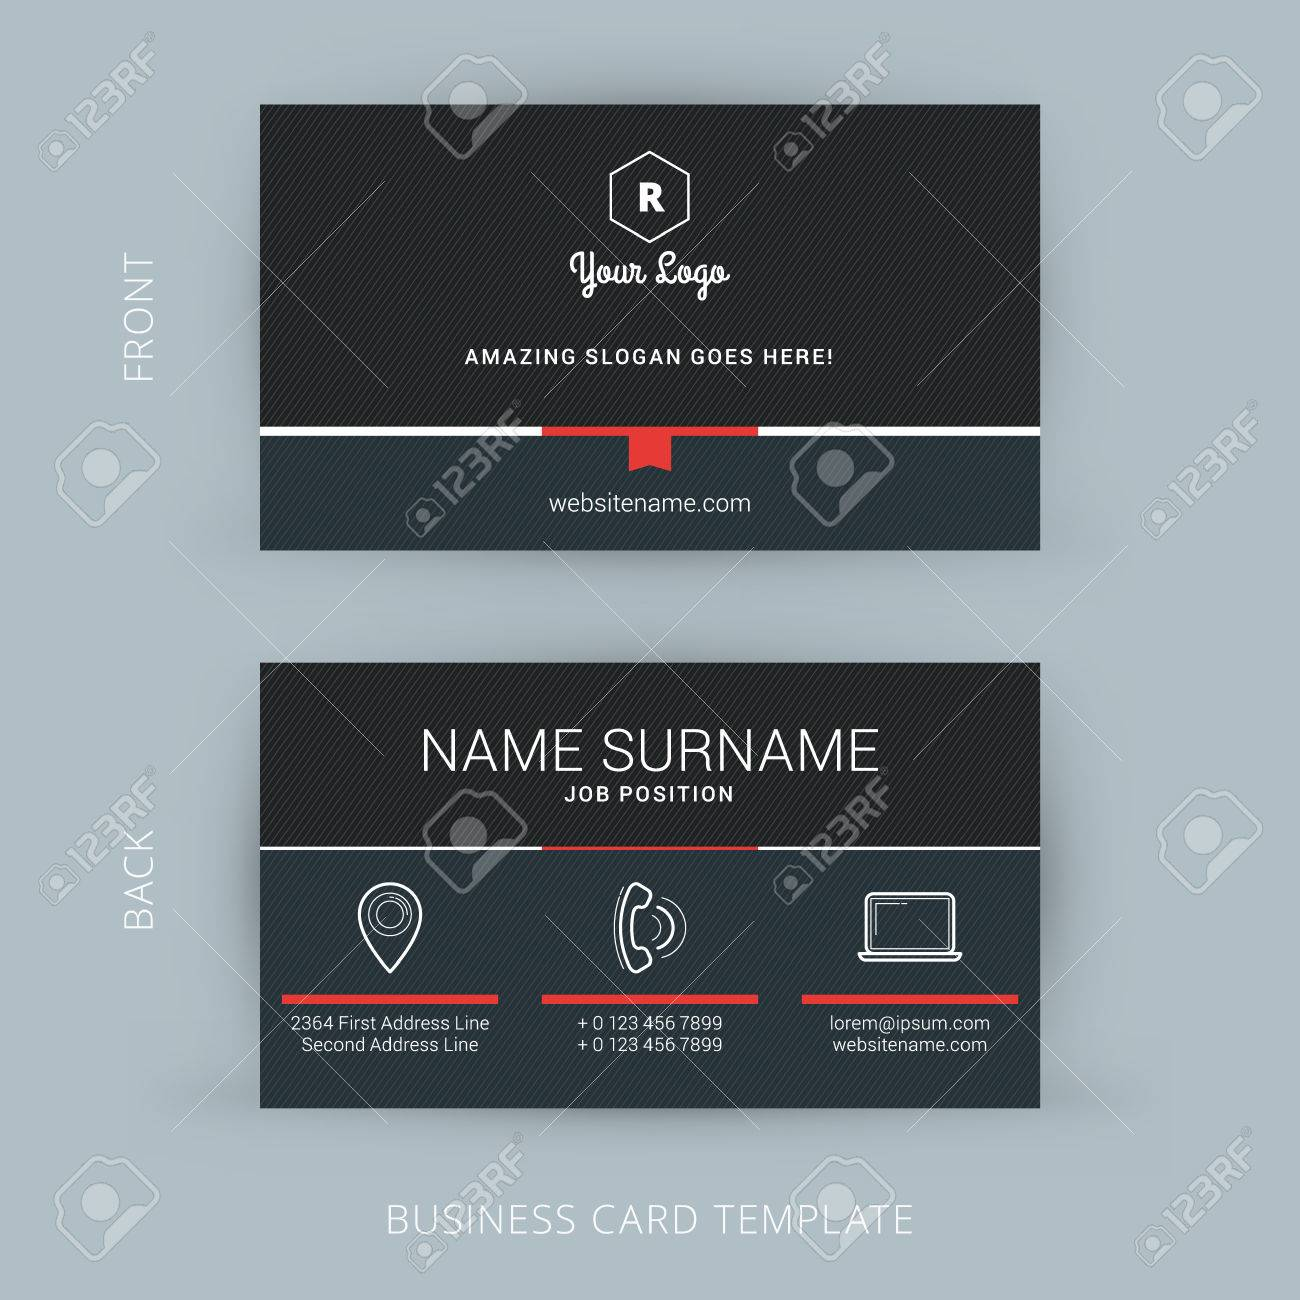 Popular Wallpaper Name Pankaj - 41897860-vector-modern-creative-and-clean-business-card-template  Image_60999.jpg